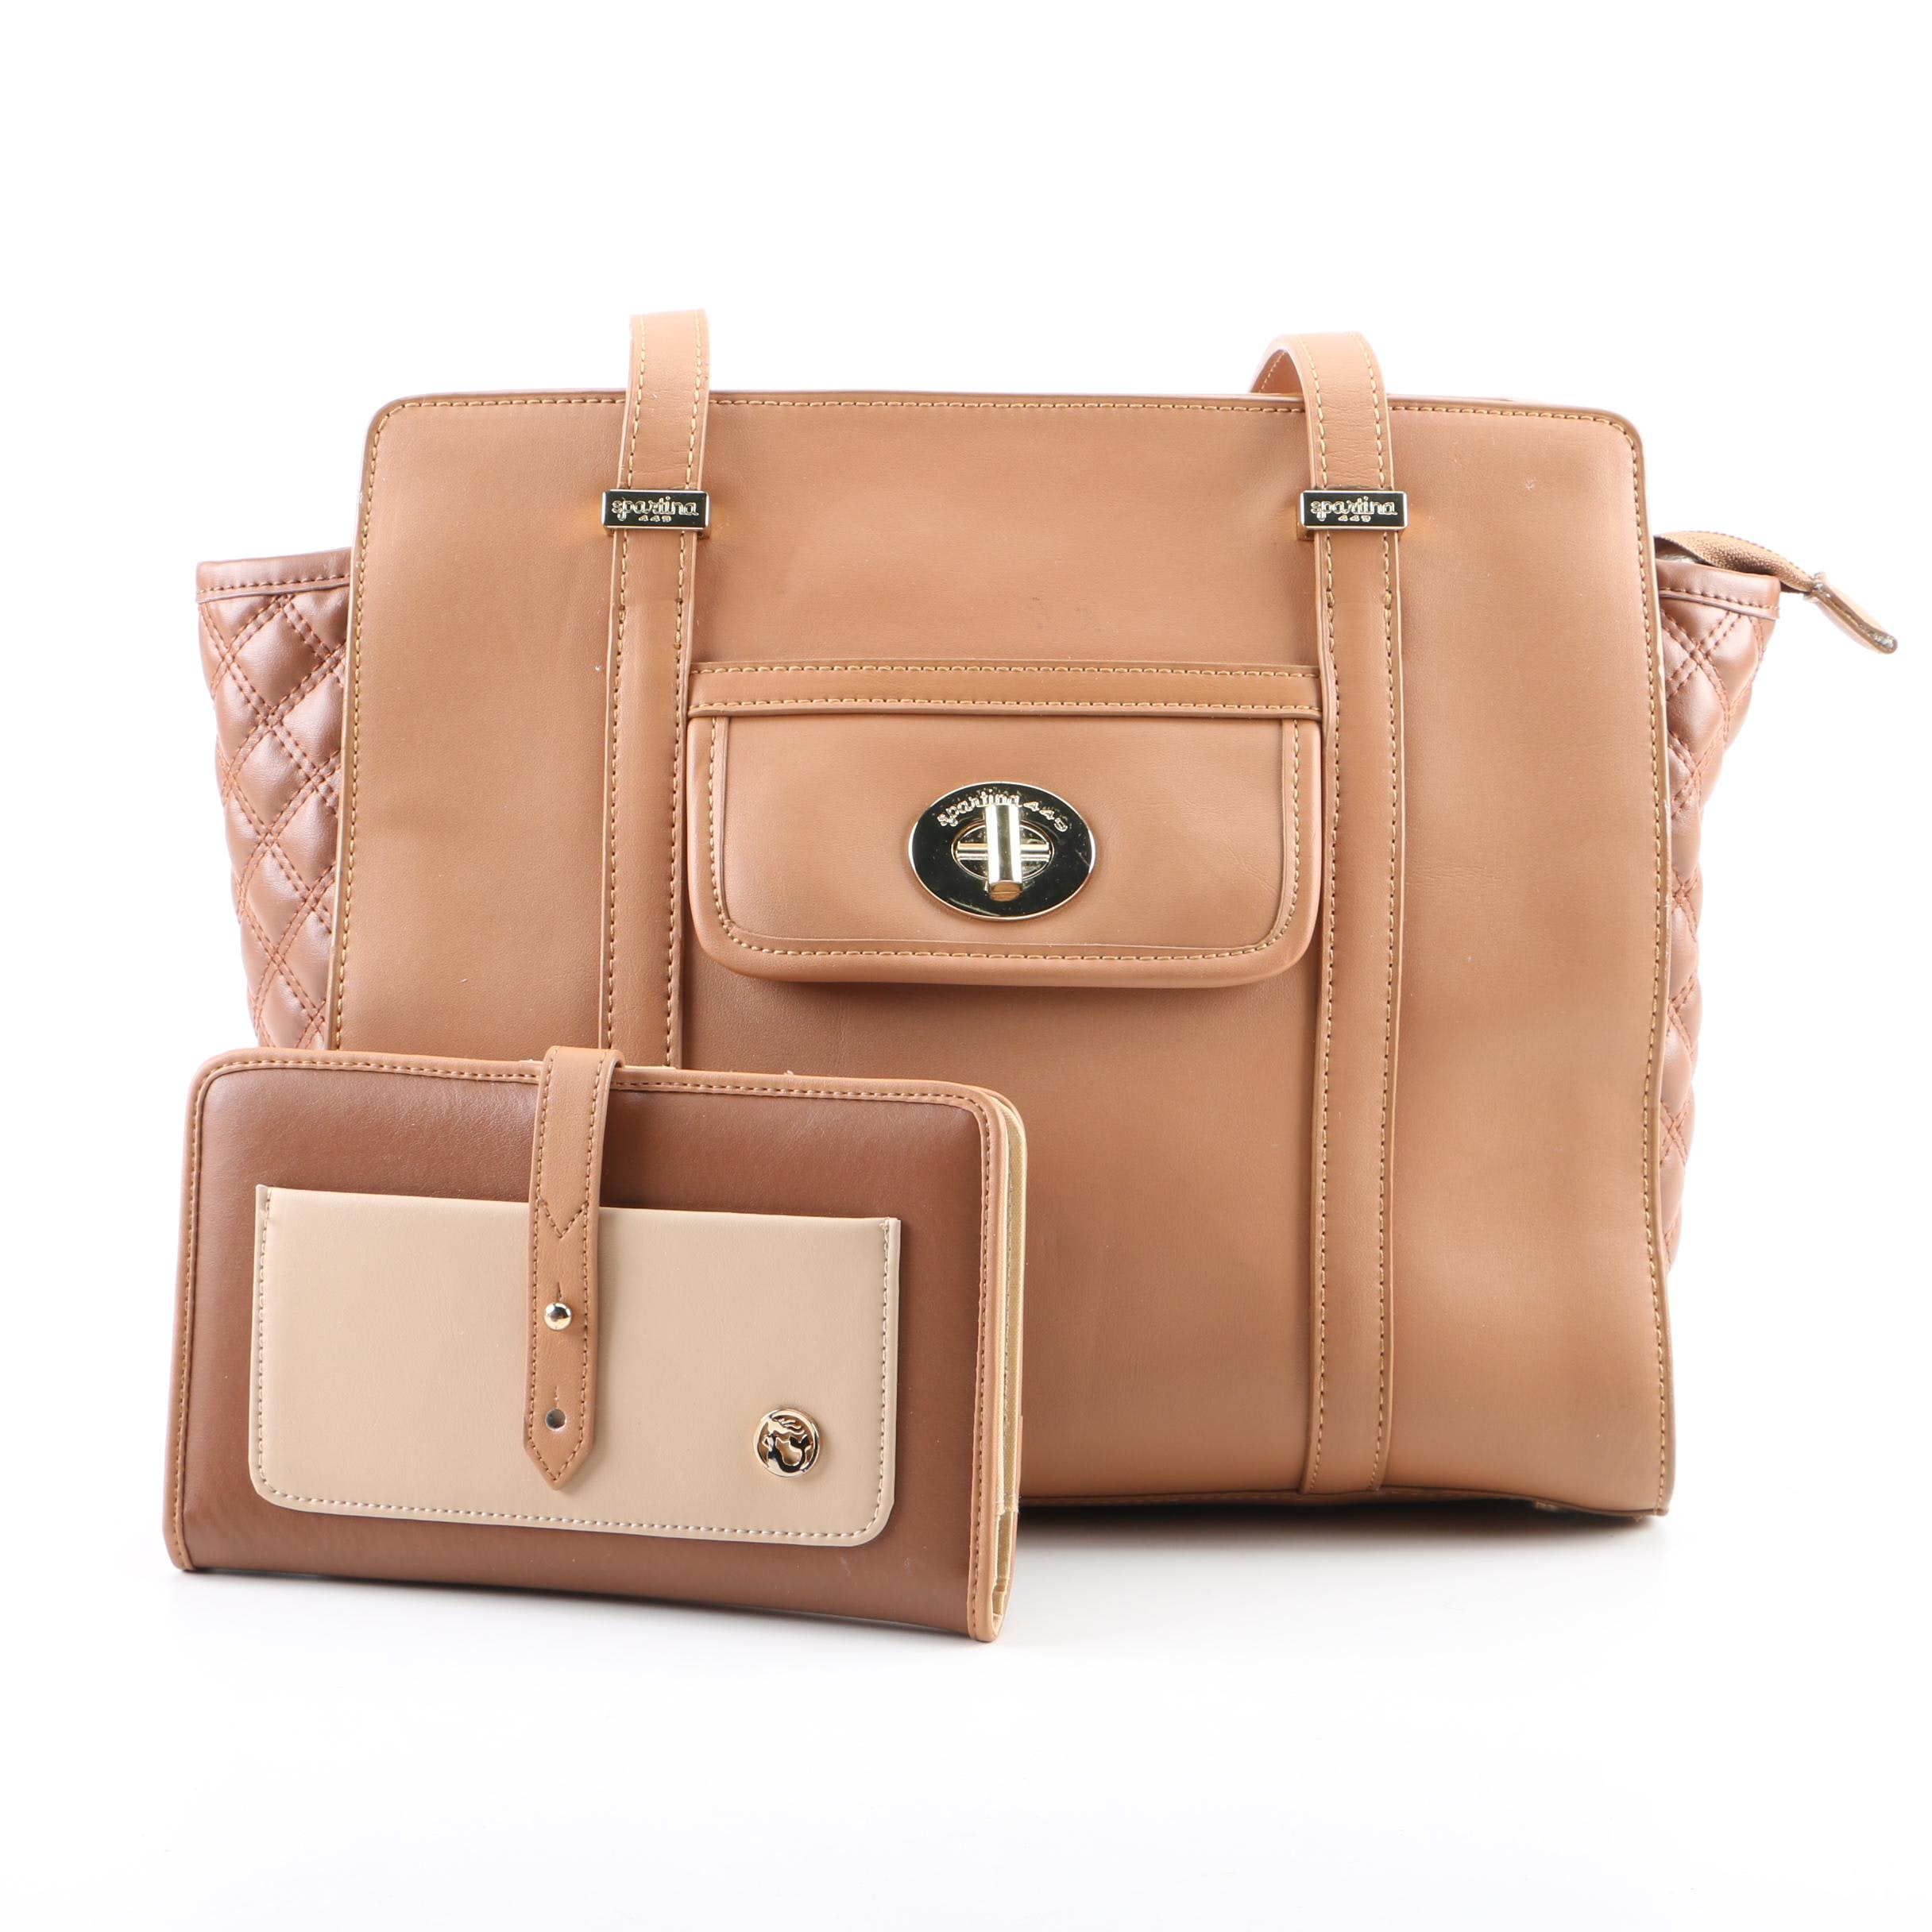 Spartina 449 Tan Leather Tote Bag with Matching Wallet